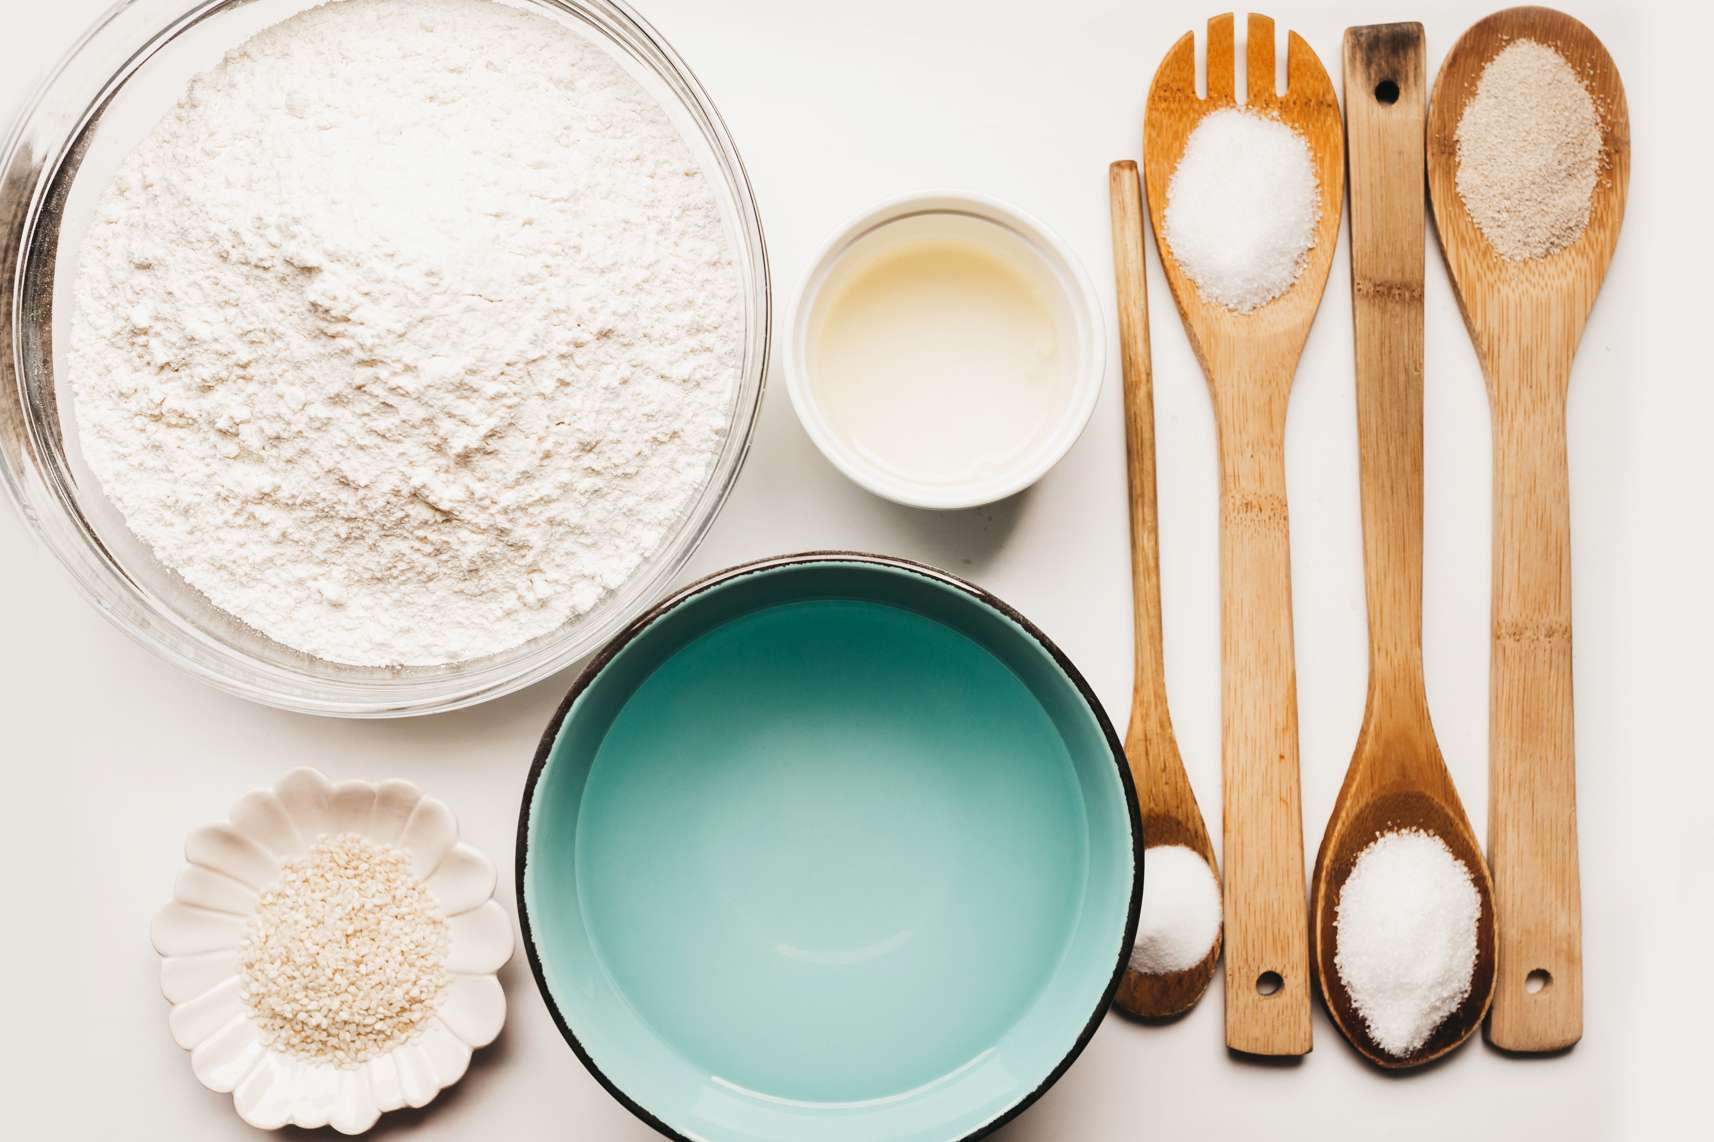 Ingredients for French bread